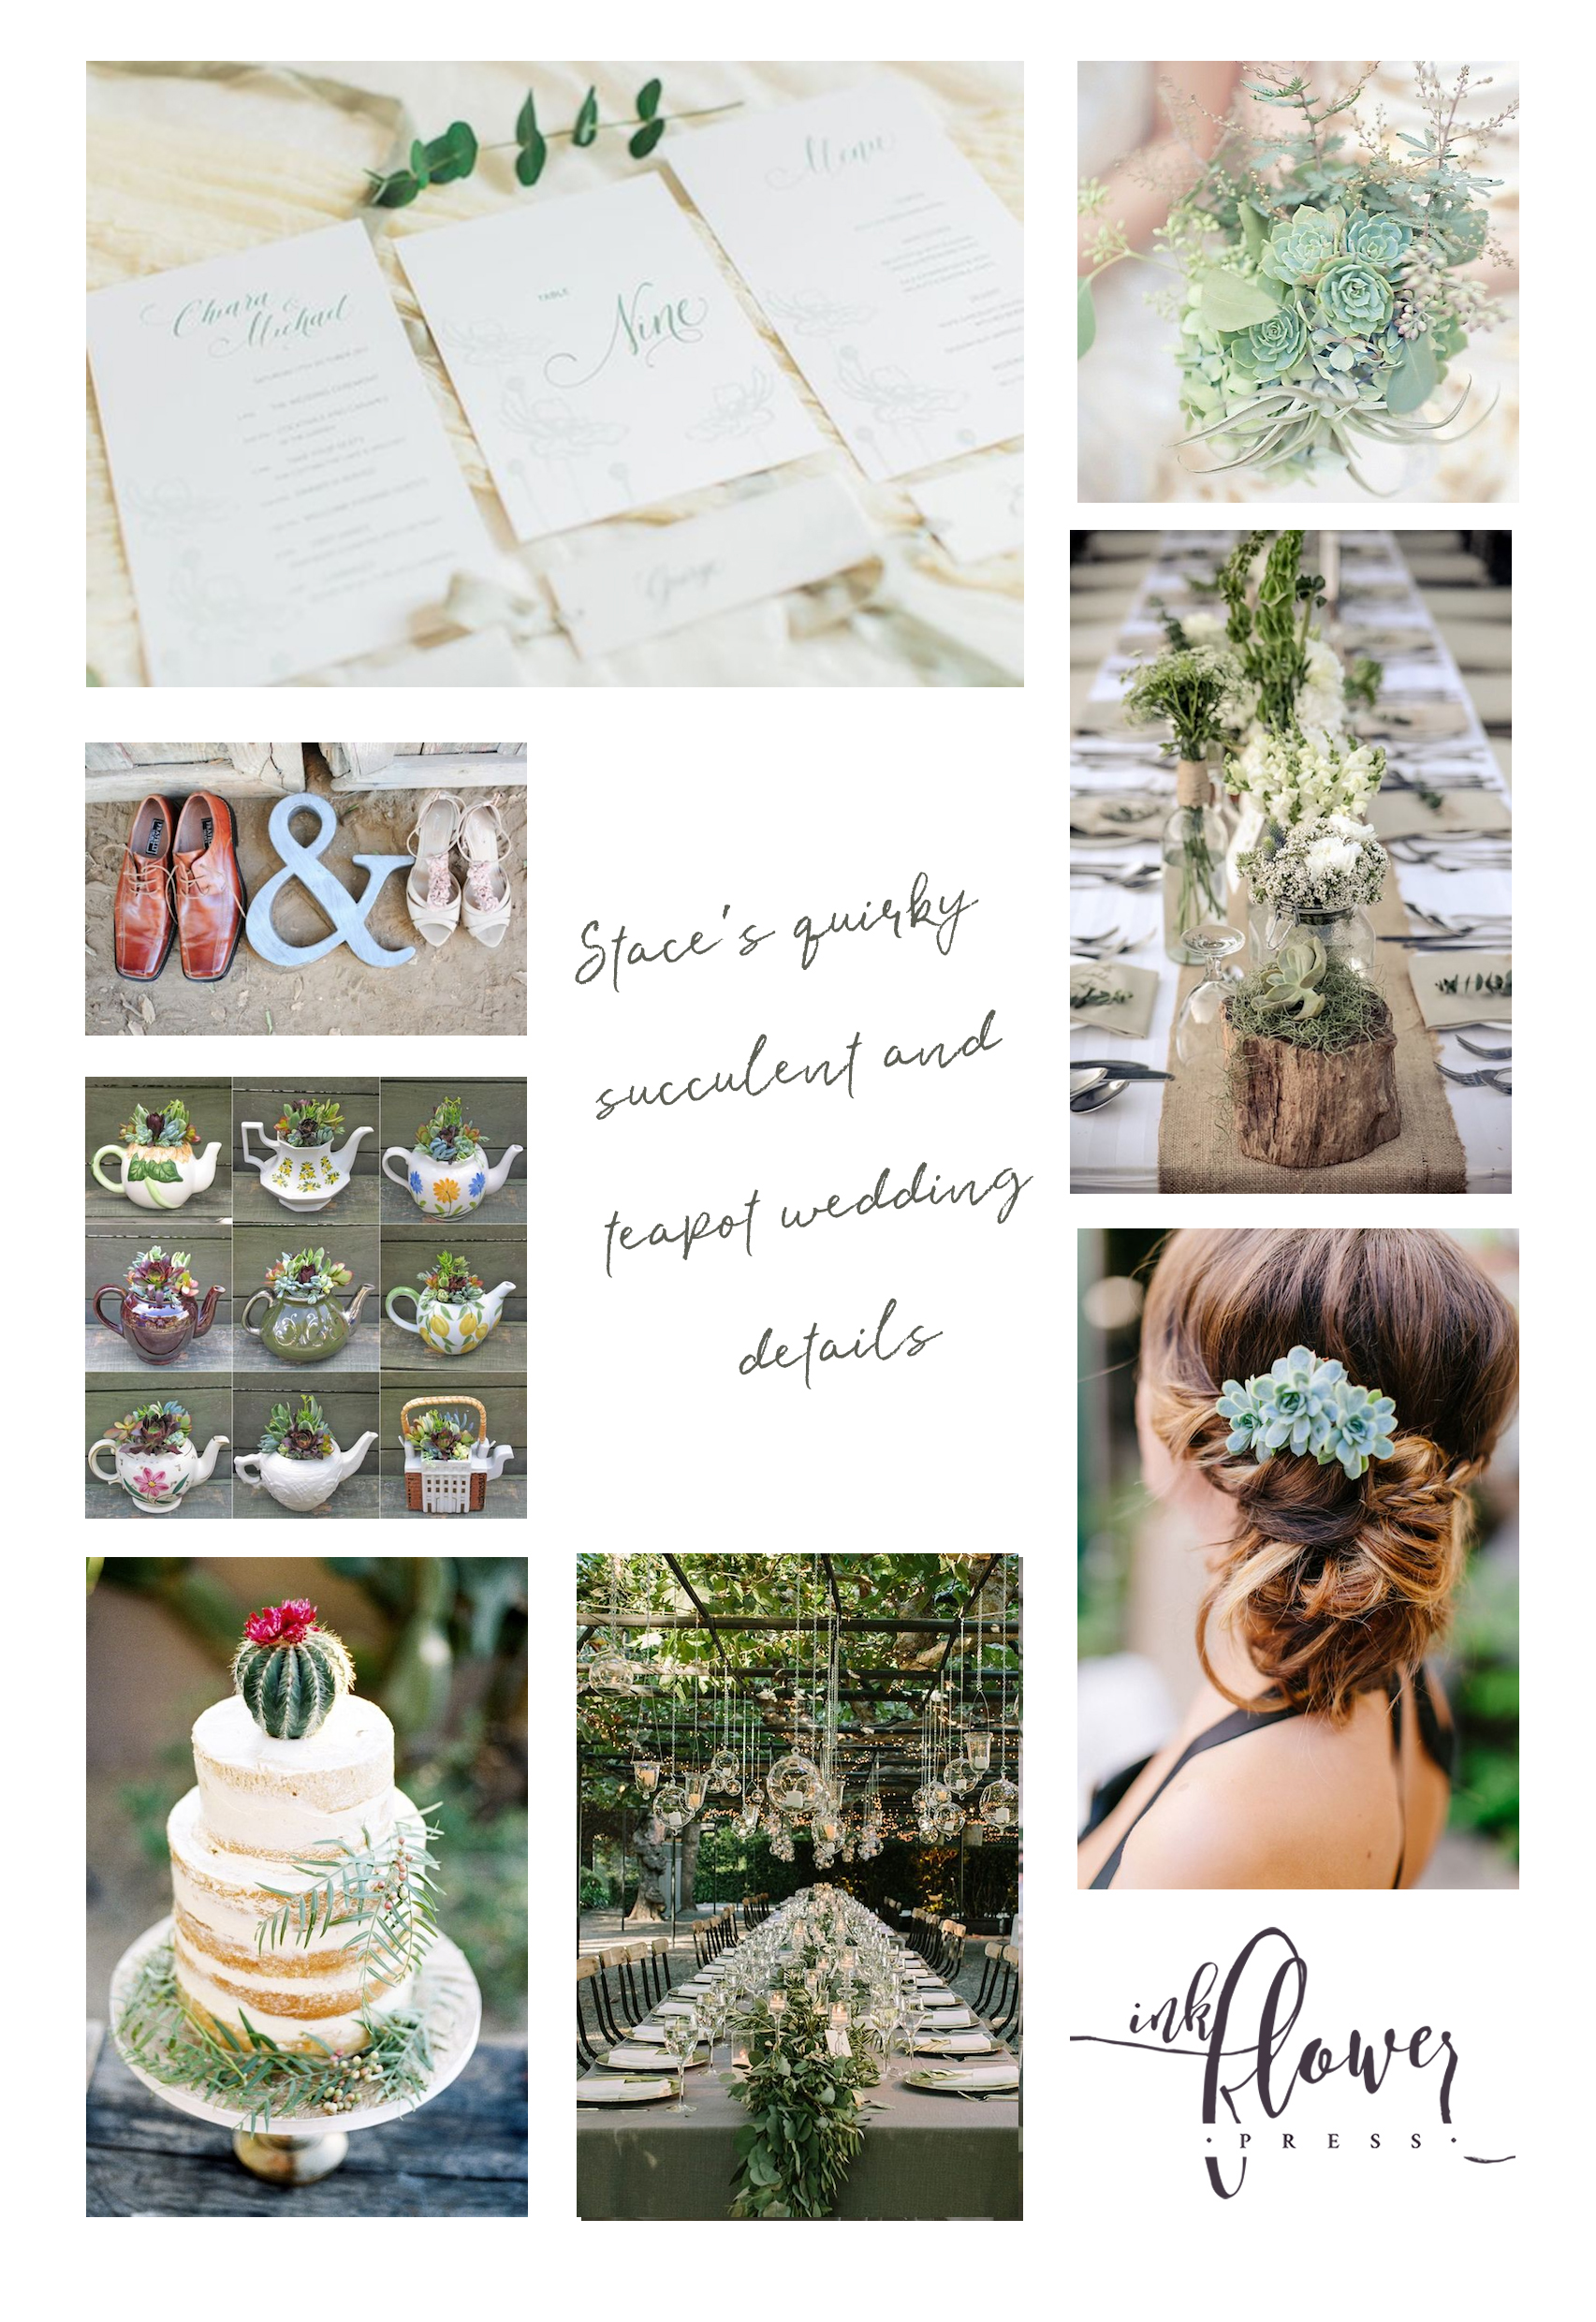 Quirky Succulent and Teapot Wedding Details